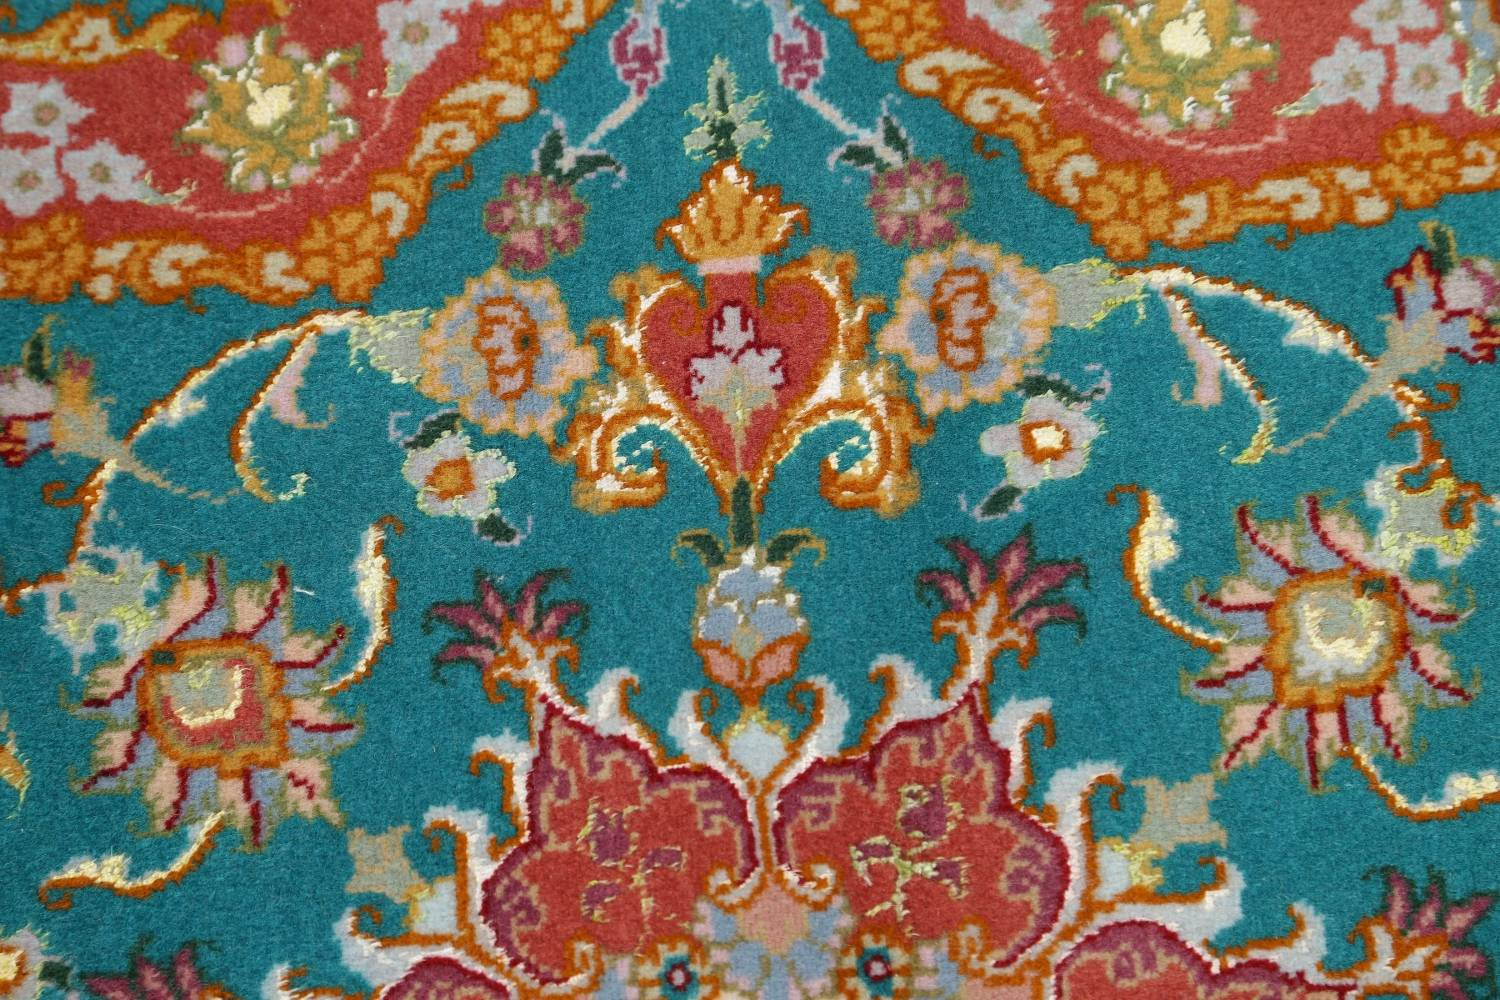 Floral Teal Tabriz Persian Hand-Knotted 3x3 Wool Silk Star Rug image 6